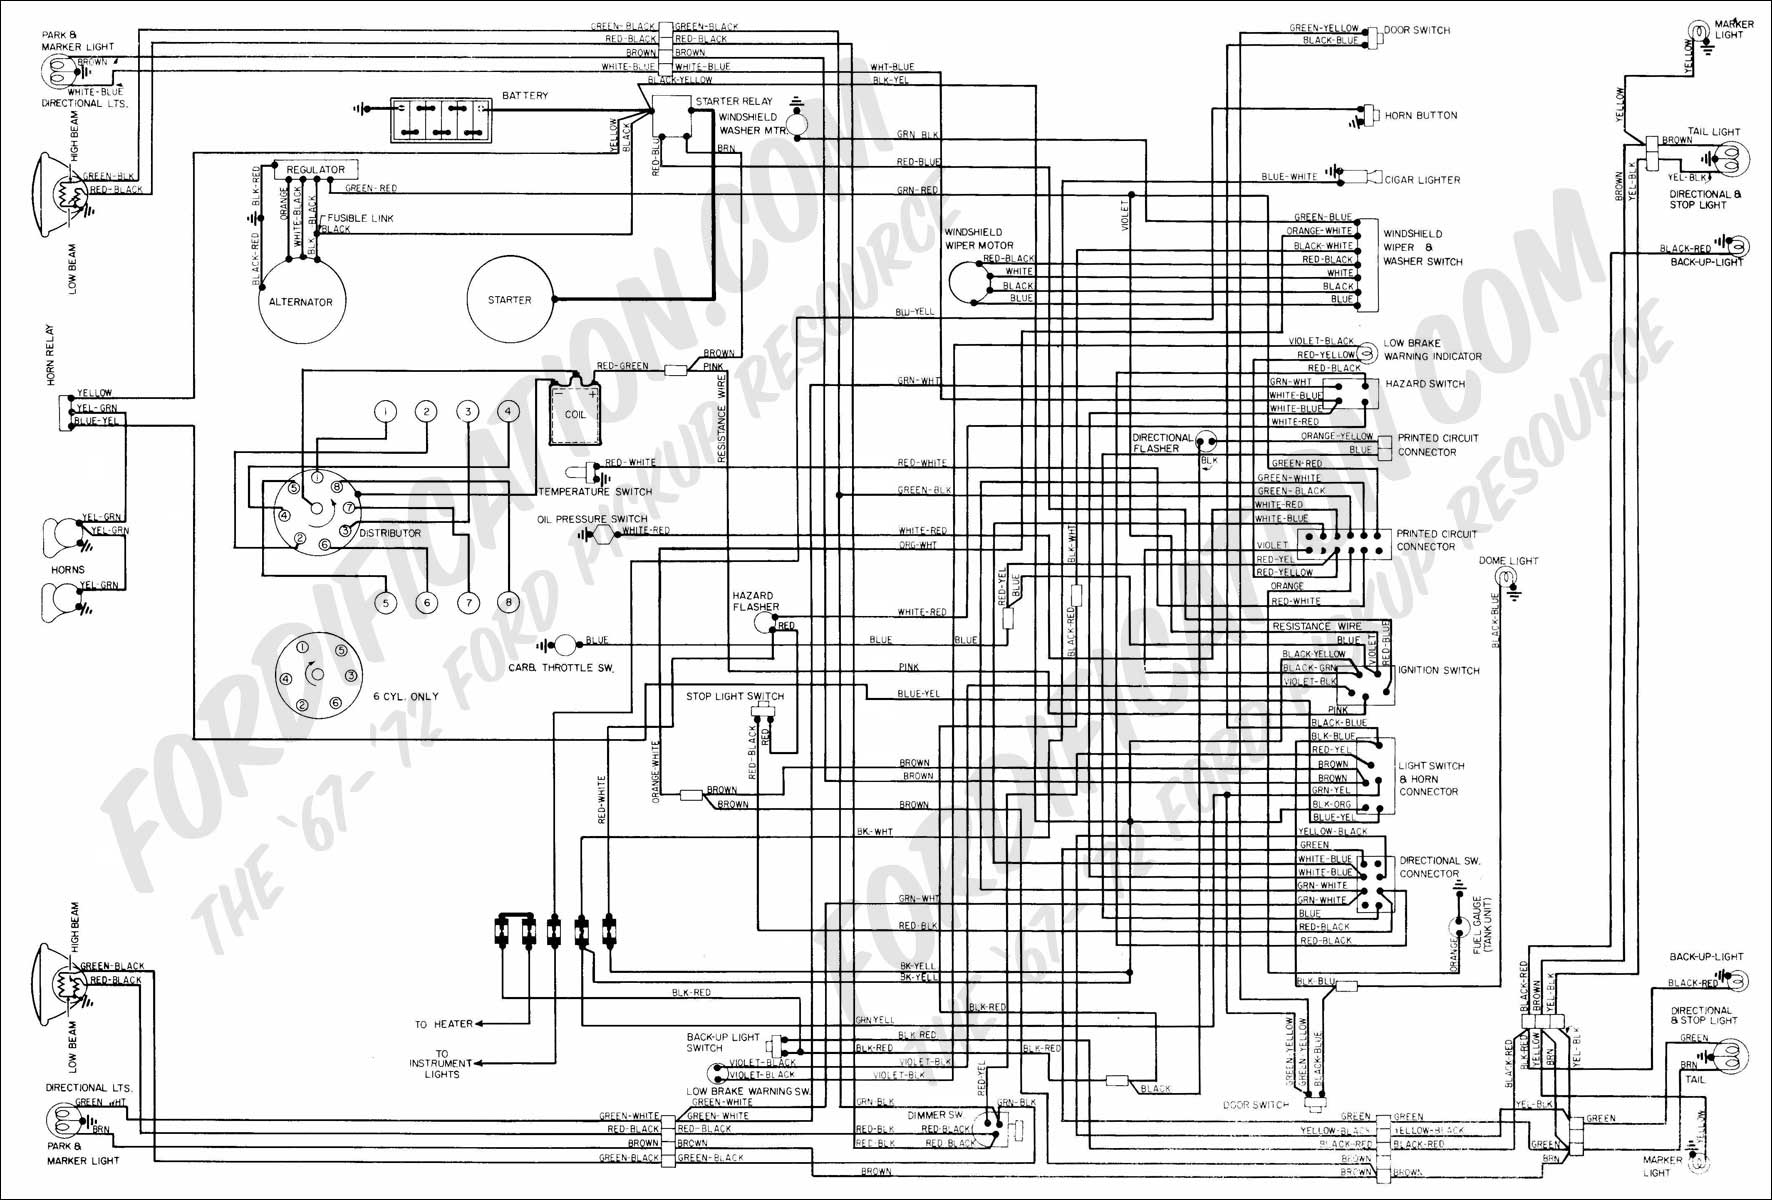 Chevrolet 305 Engine Diagram in addition Showthread as well 1970 Plymouth Belvedere Gtx Road Runner besides 5h5hx 90 F150 Months Ago Wouldn T Start together with 1971 C10 Wiring Diagram. on 1970 vw distributor